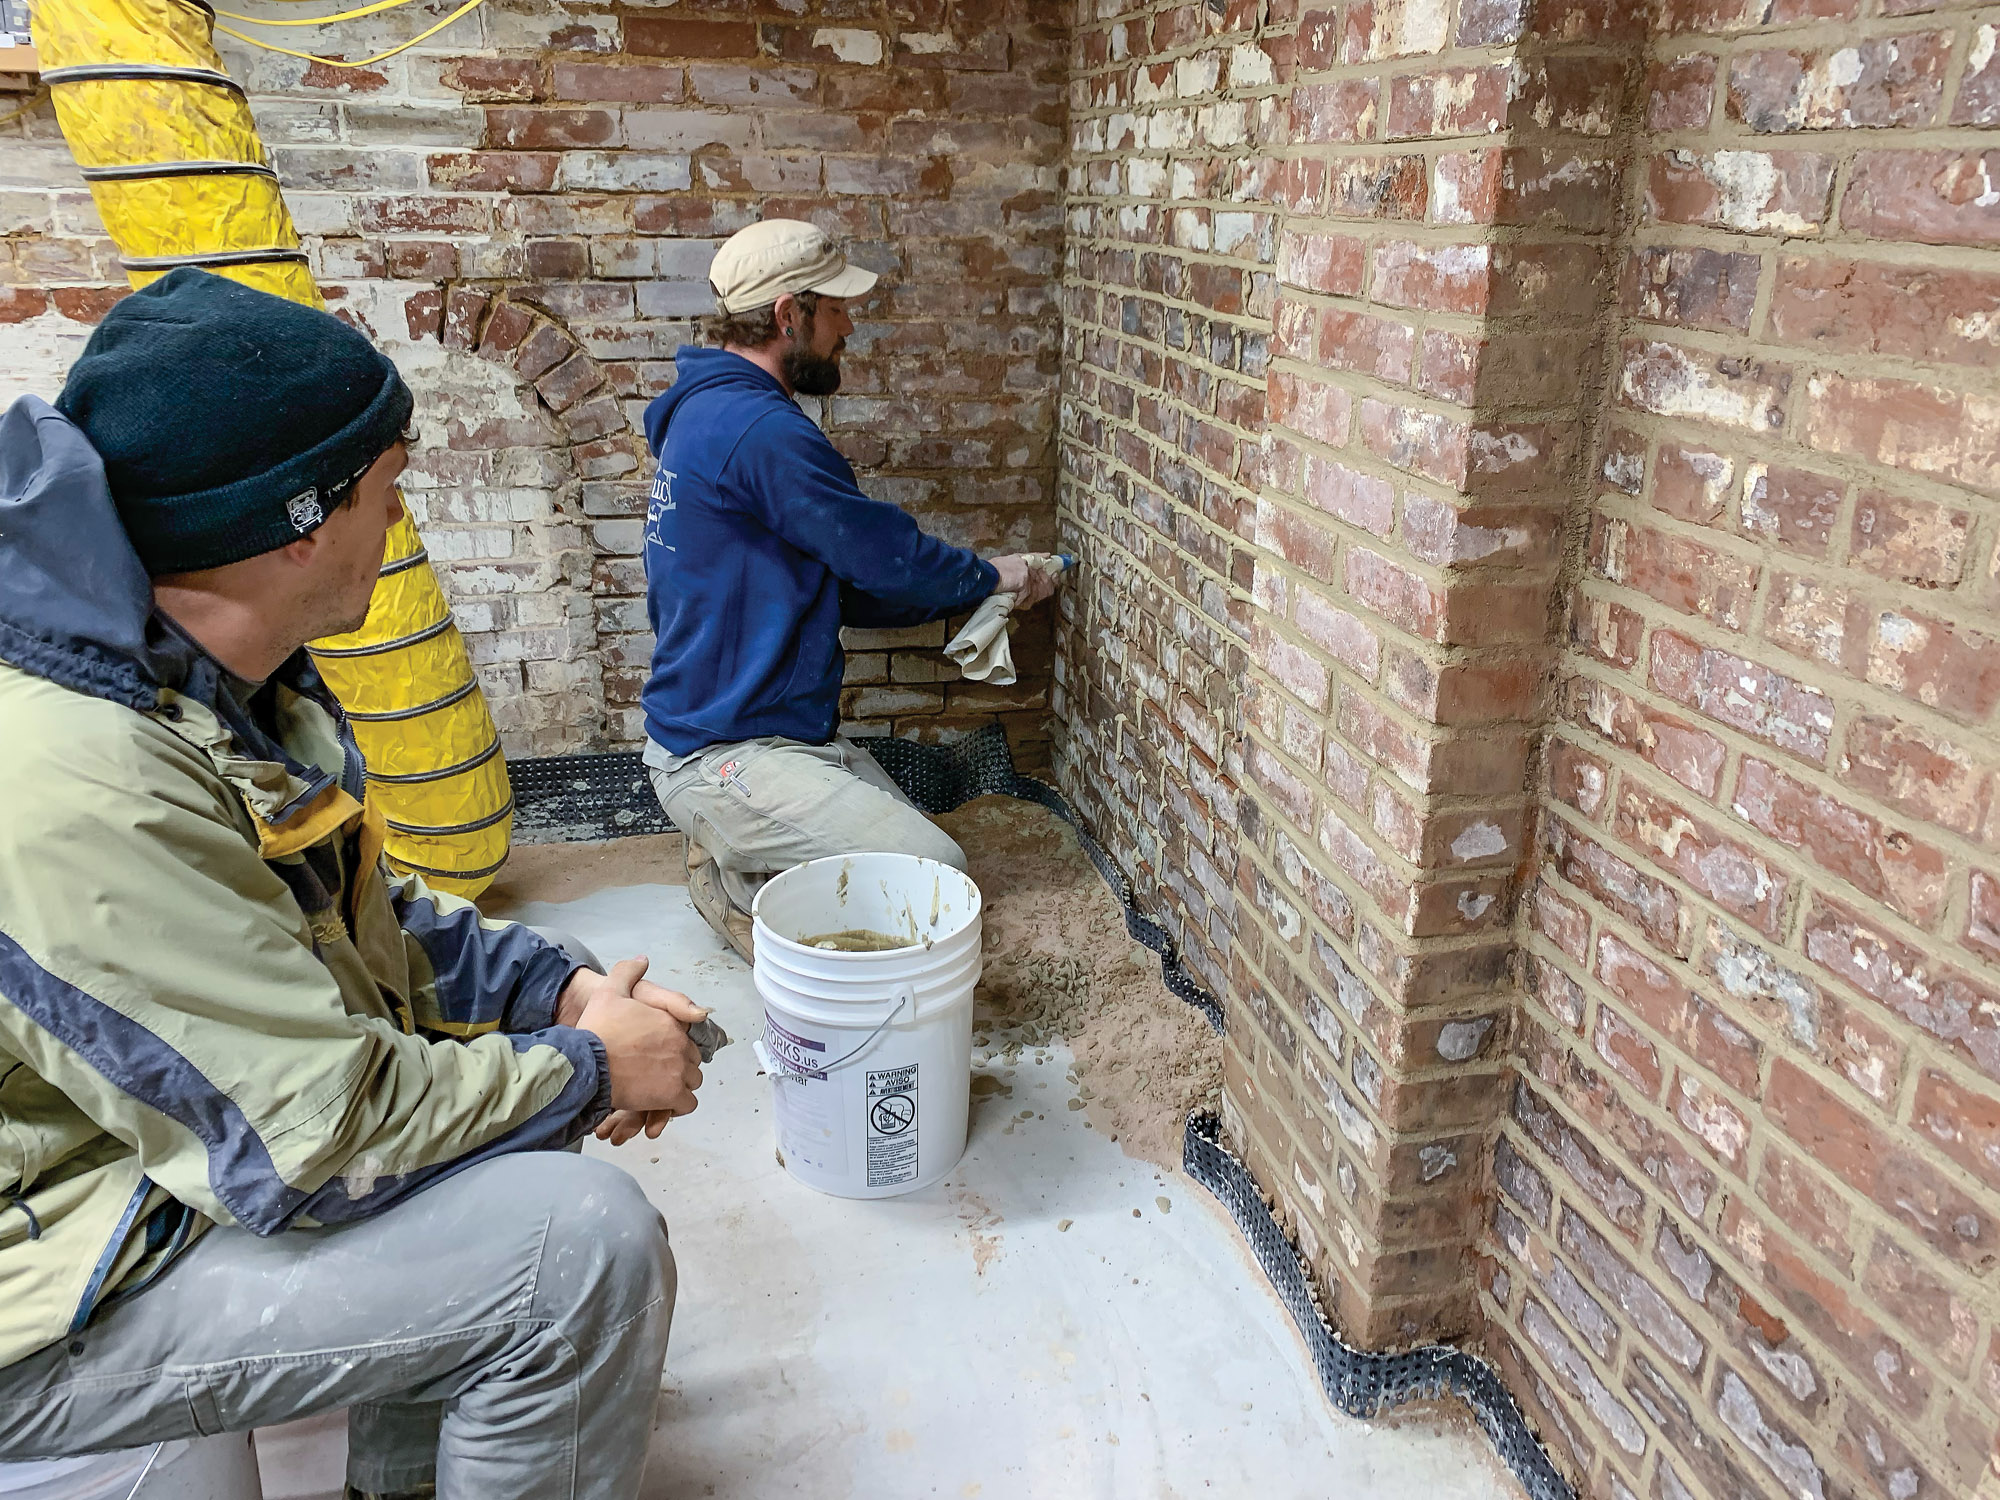 Although repointing is traditionally done with a pointing trowel, many contemporary masons use a squeeze bag to fill joints. While the mason works, author Alex Santantonio rests from his paint-stripping labors.